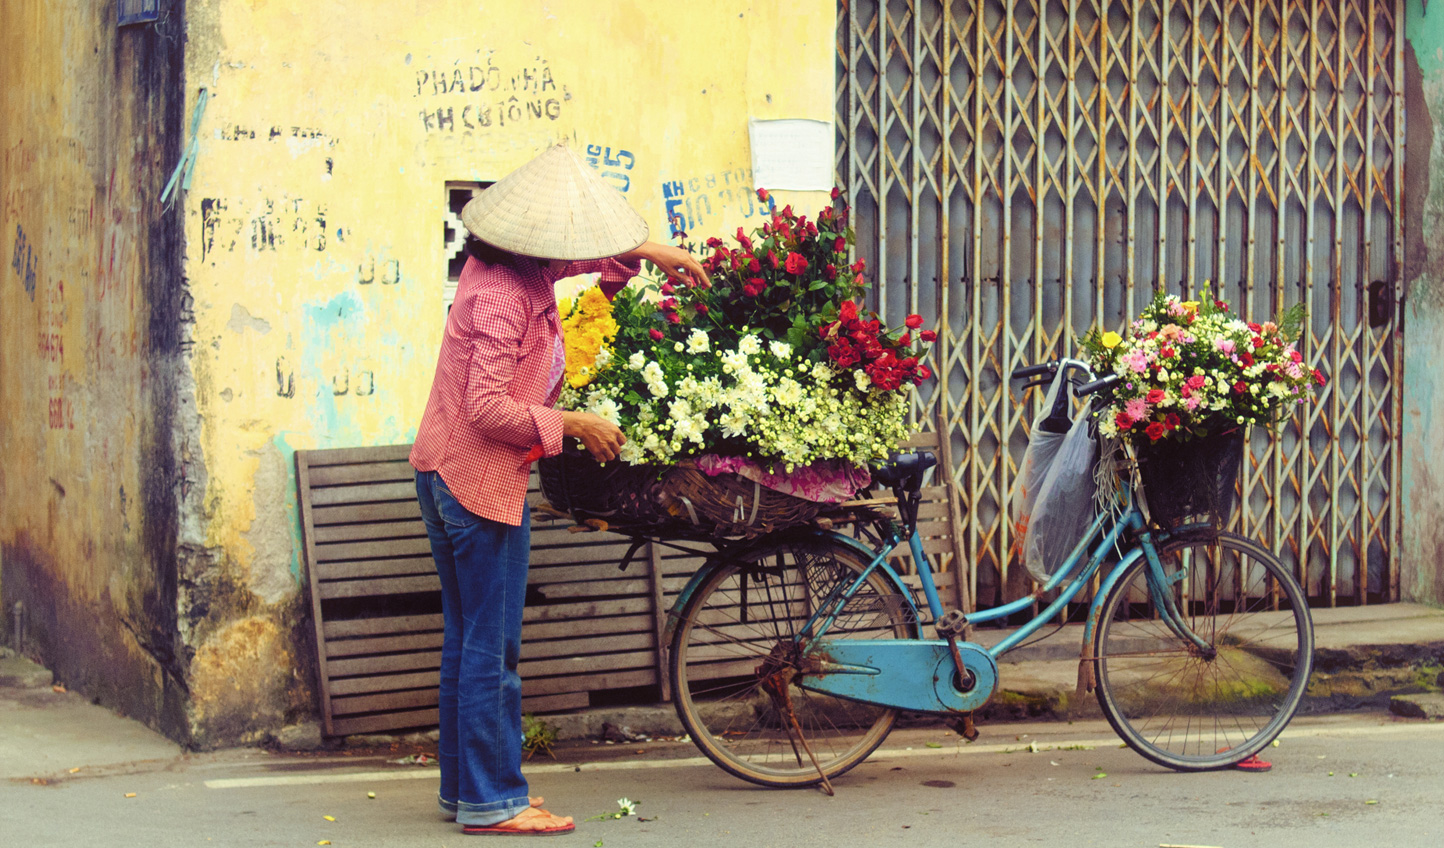 Pick up freshly cut flowers on the street